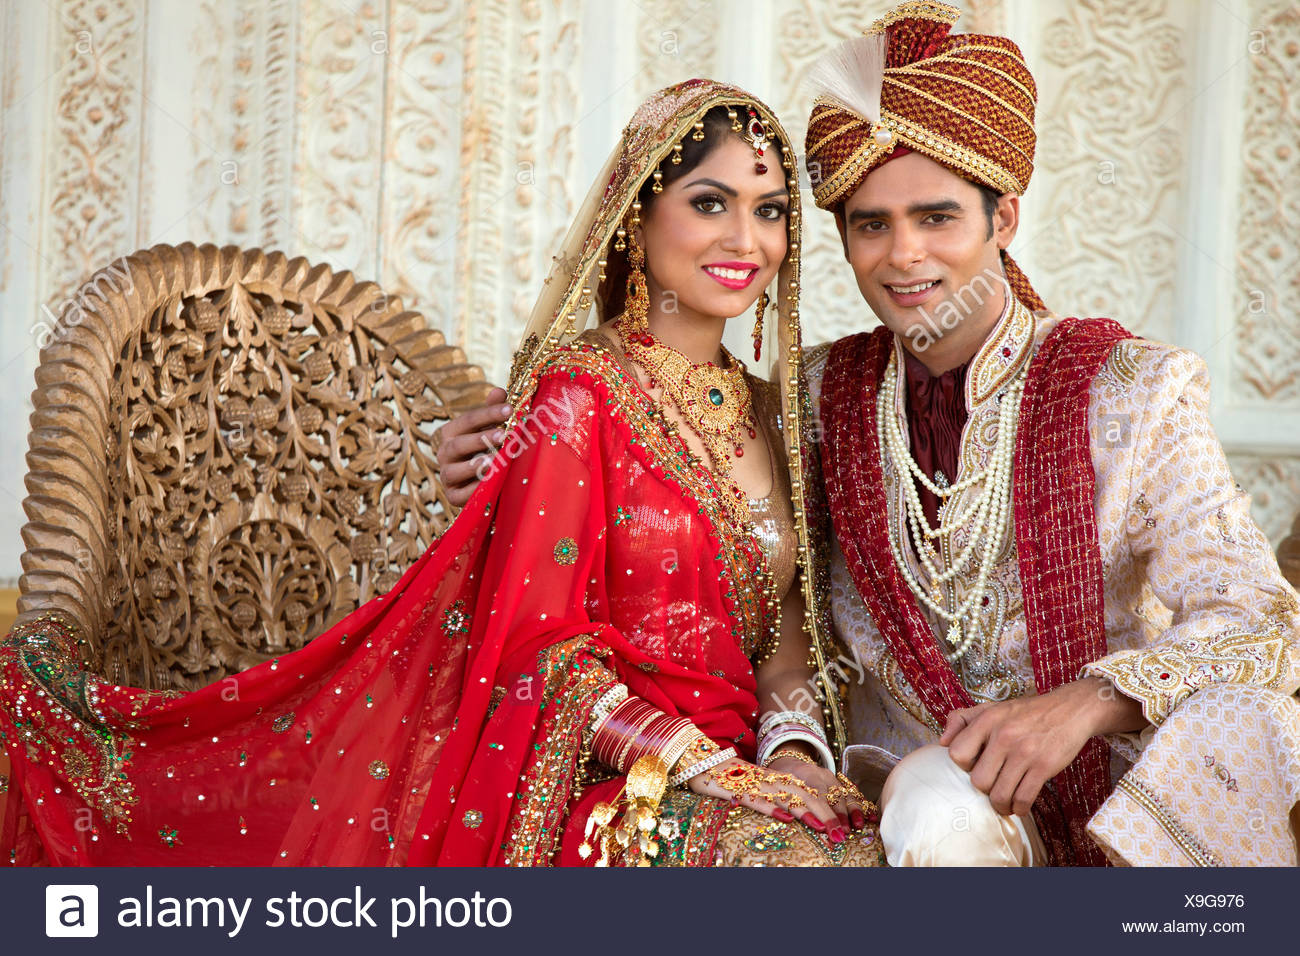 6c515d48fe Indian bride and groom in traditional wedding dress sitting on a couch